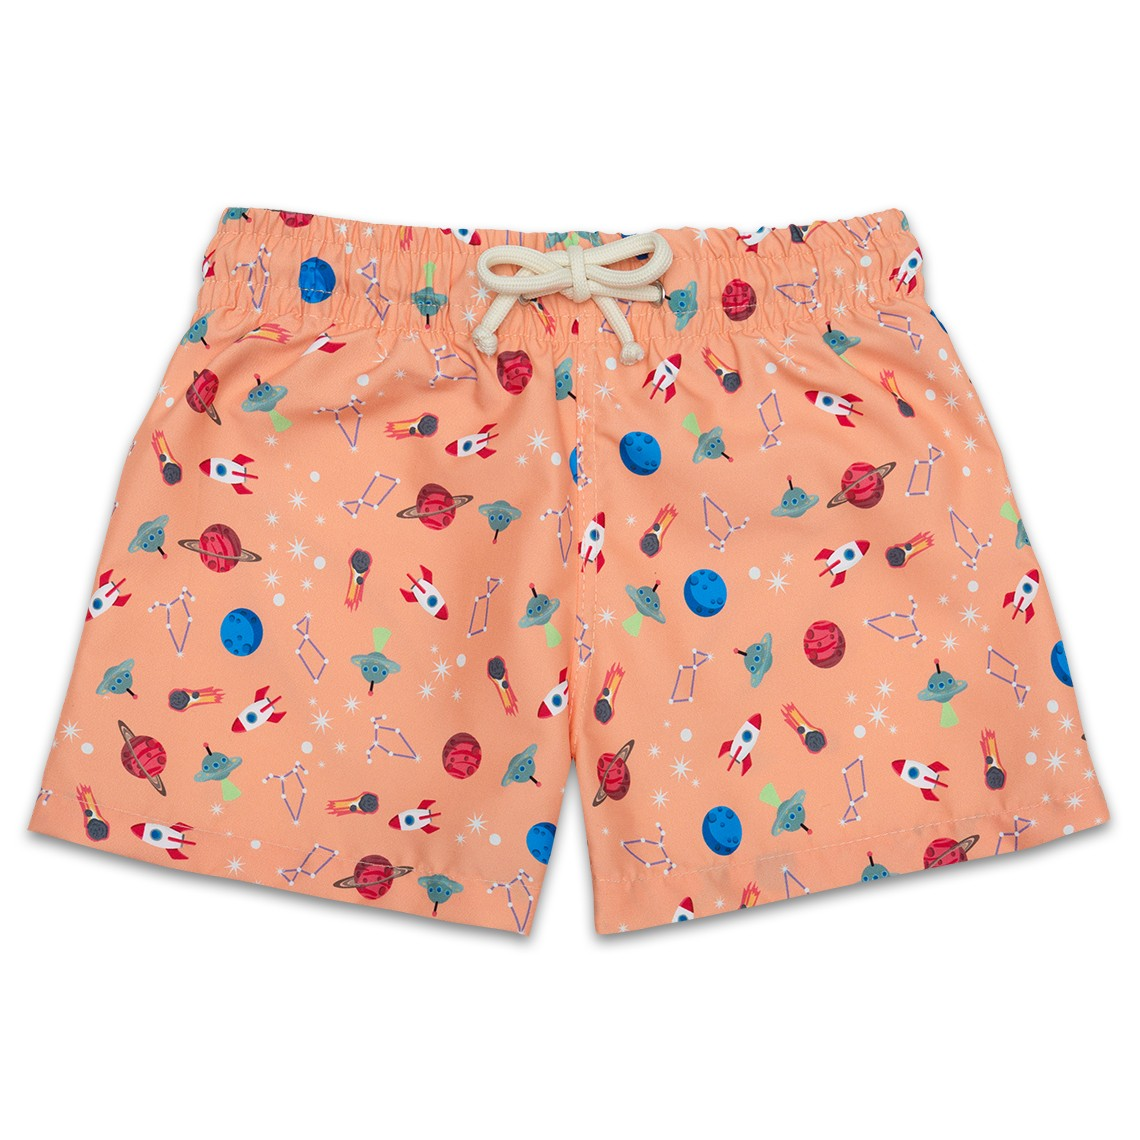 d949fb6425 Boy Swim short Atomic Tangerine Space Ships 2 to 8 years - Ocoly